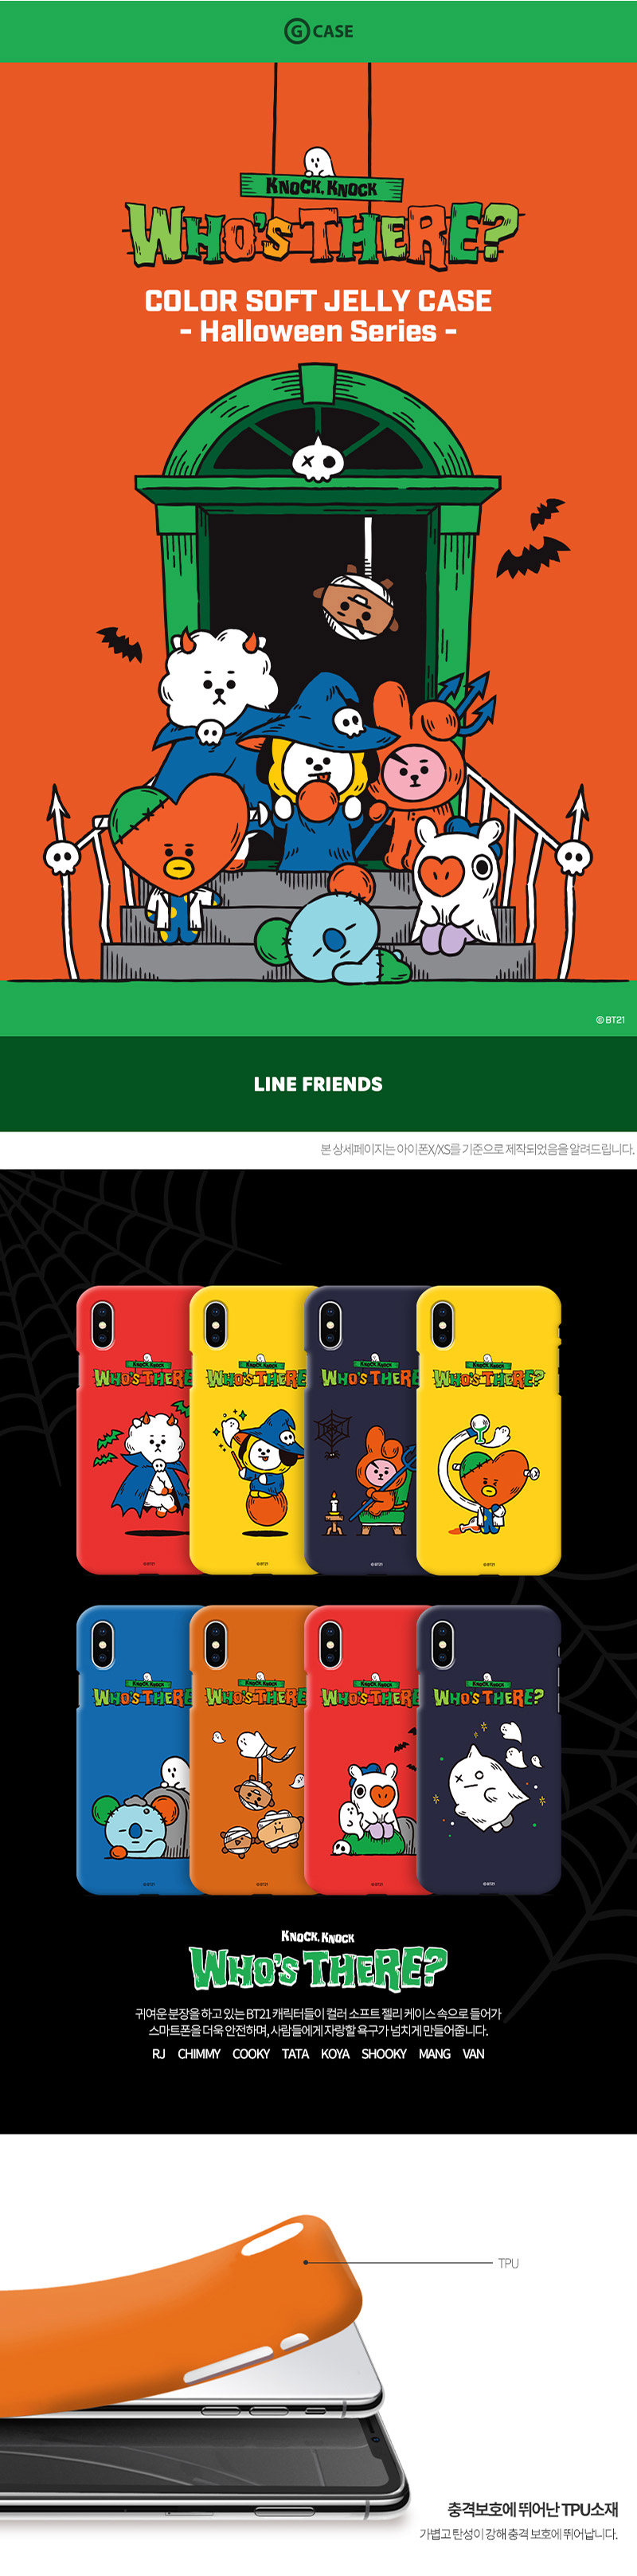 bt21_gc_colorsoftjellycase_halloween_01.